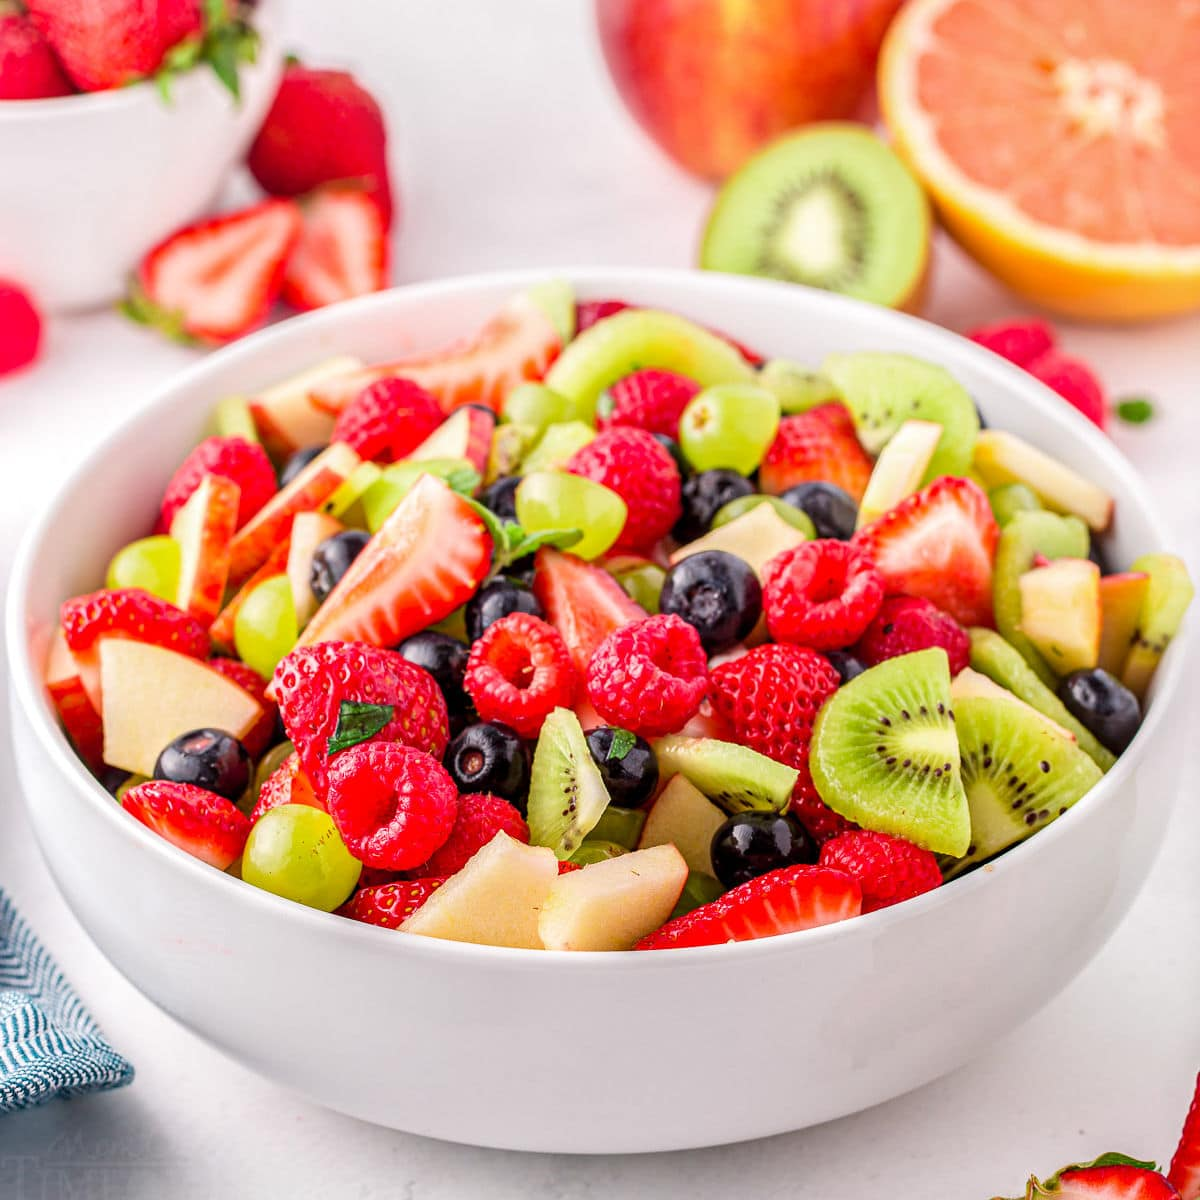 light and refreshing fruit salad with summer fruits in large white serving dish.